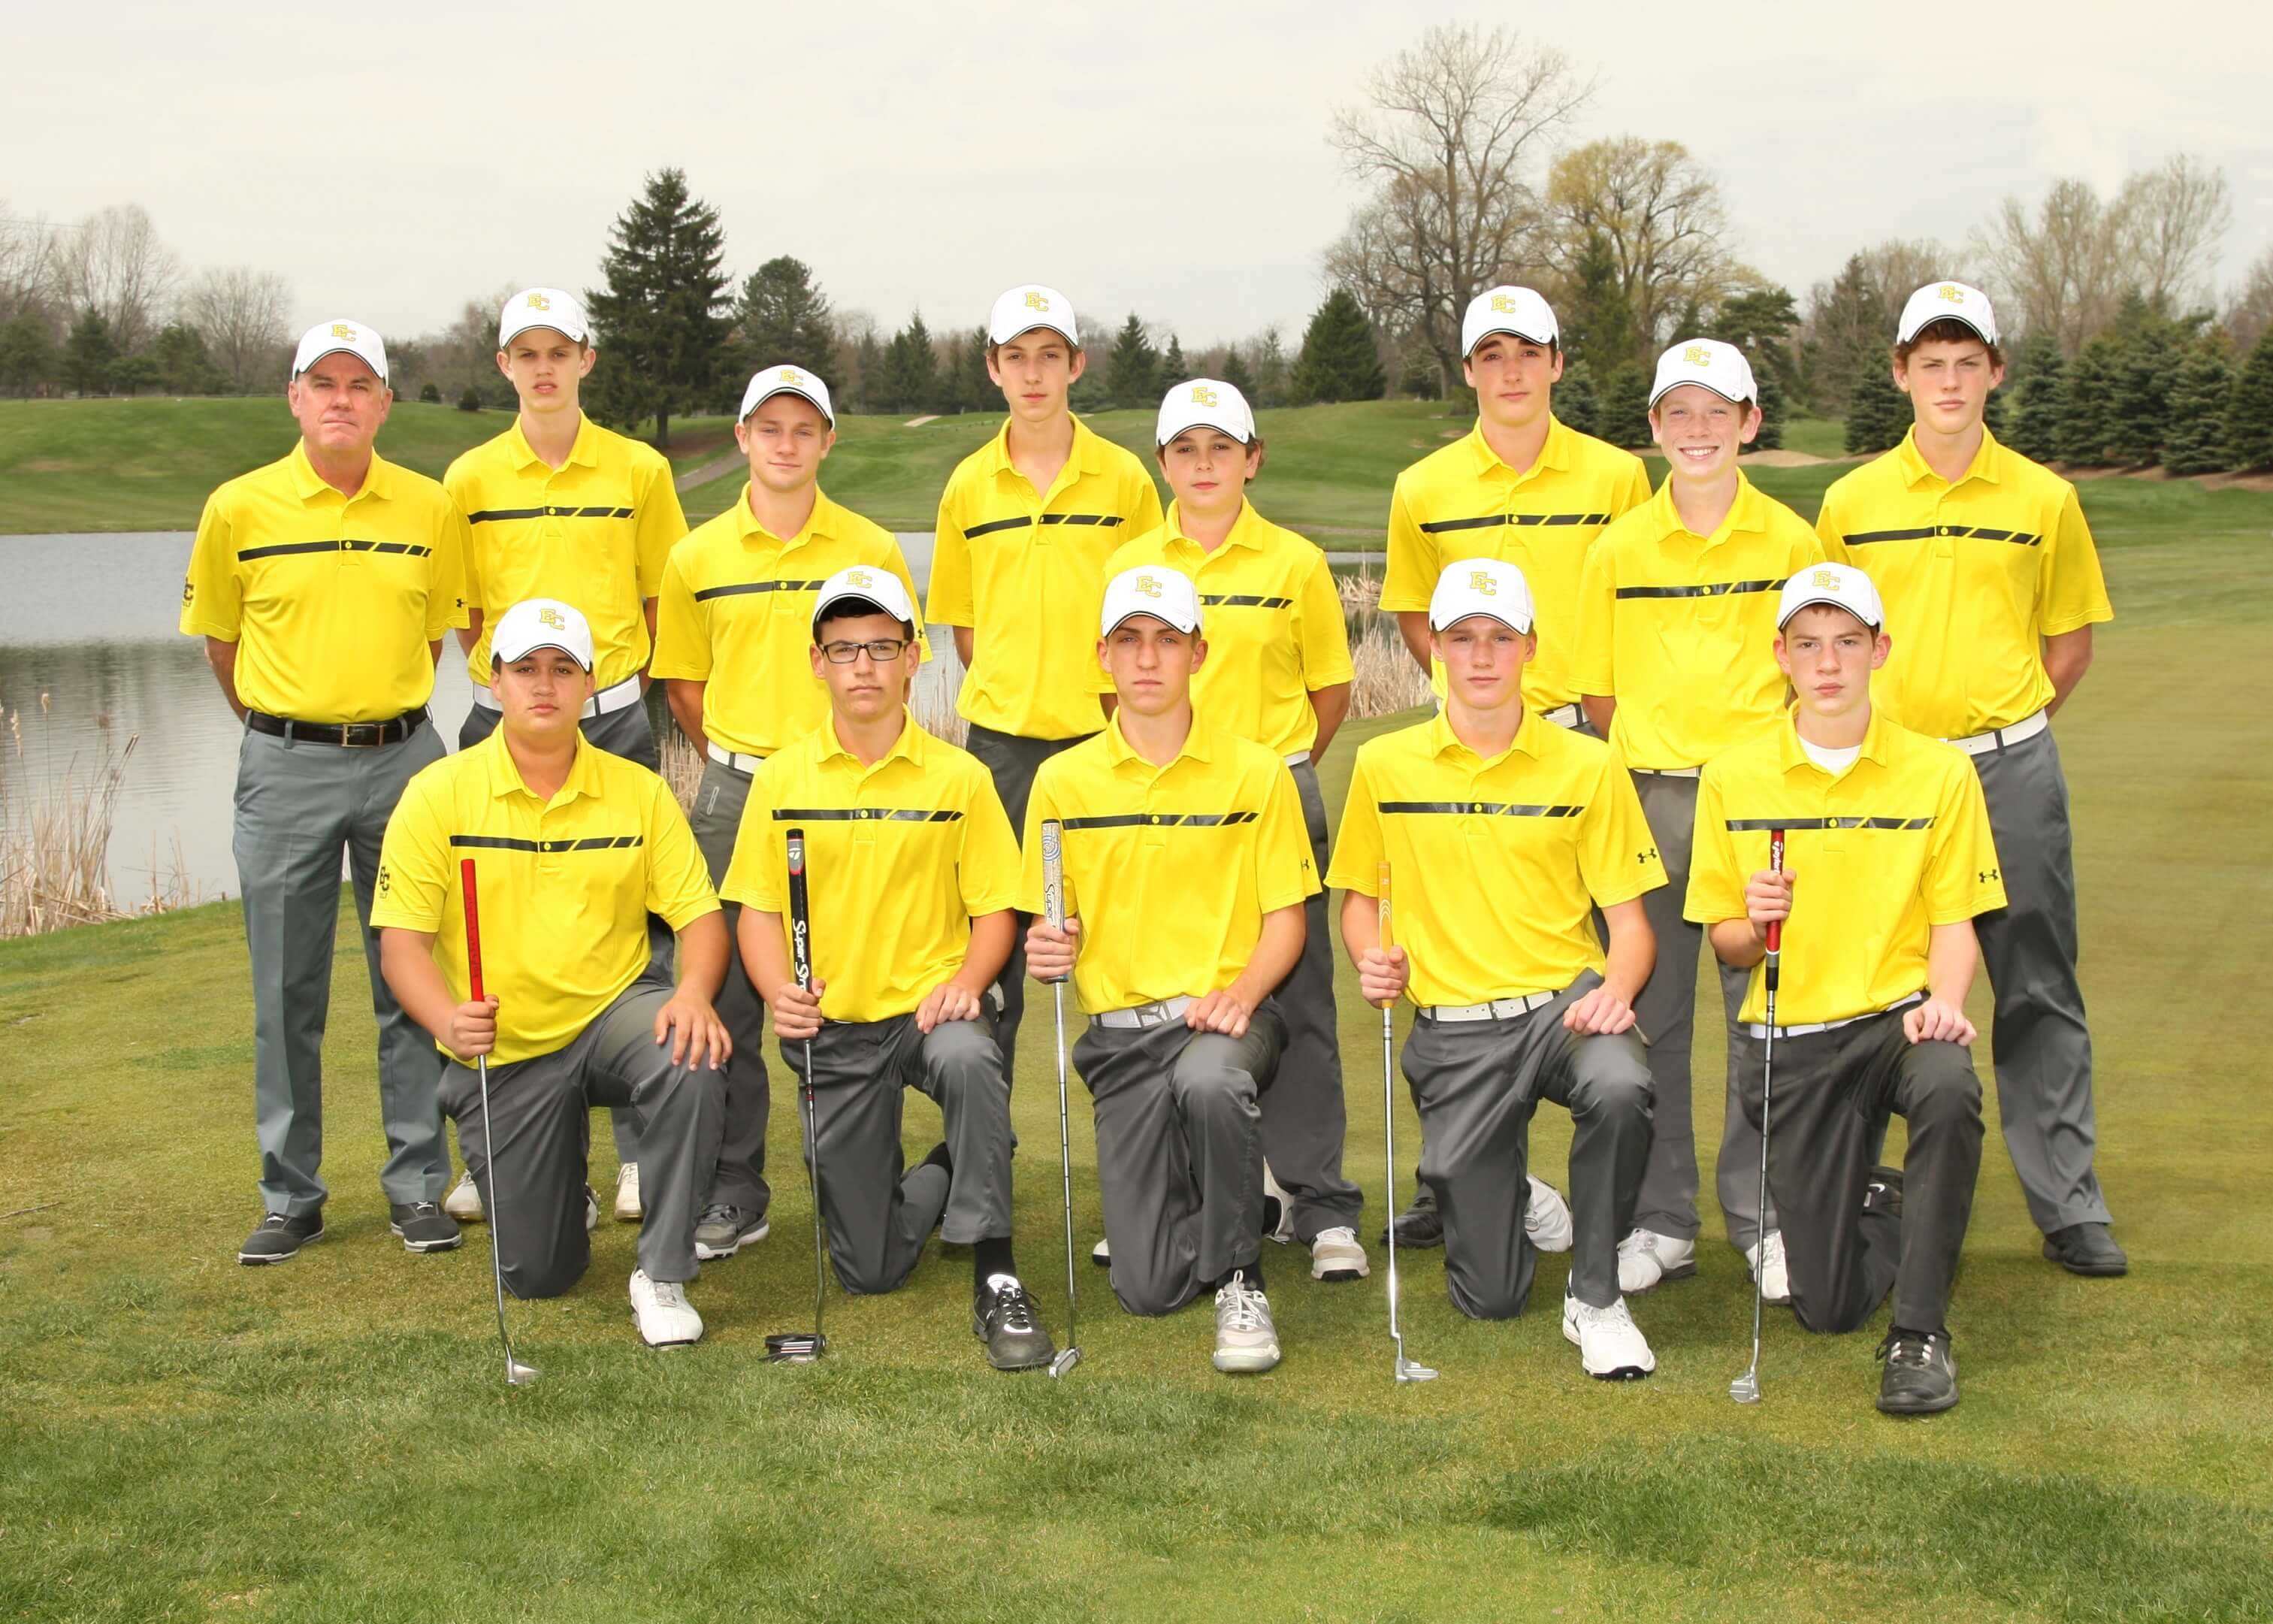 Golf Team Members: (back row, left to right) Coach Dave Smith, Jack McGrath, Tyler Rozwadowski, Rodrigo DeNigris, Antonio Navarro, Andrew Stafford, Kevin Meehan and Max Engle. (Front row, kneeling from left to right) Nick Korns, Mitch Lowney, Joey McMahon, JC James and Andrew Ross.